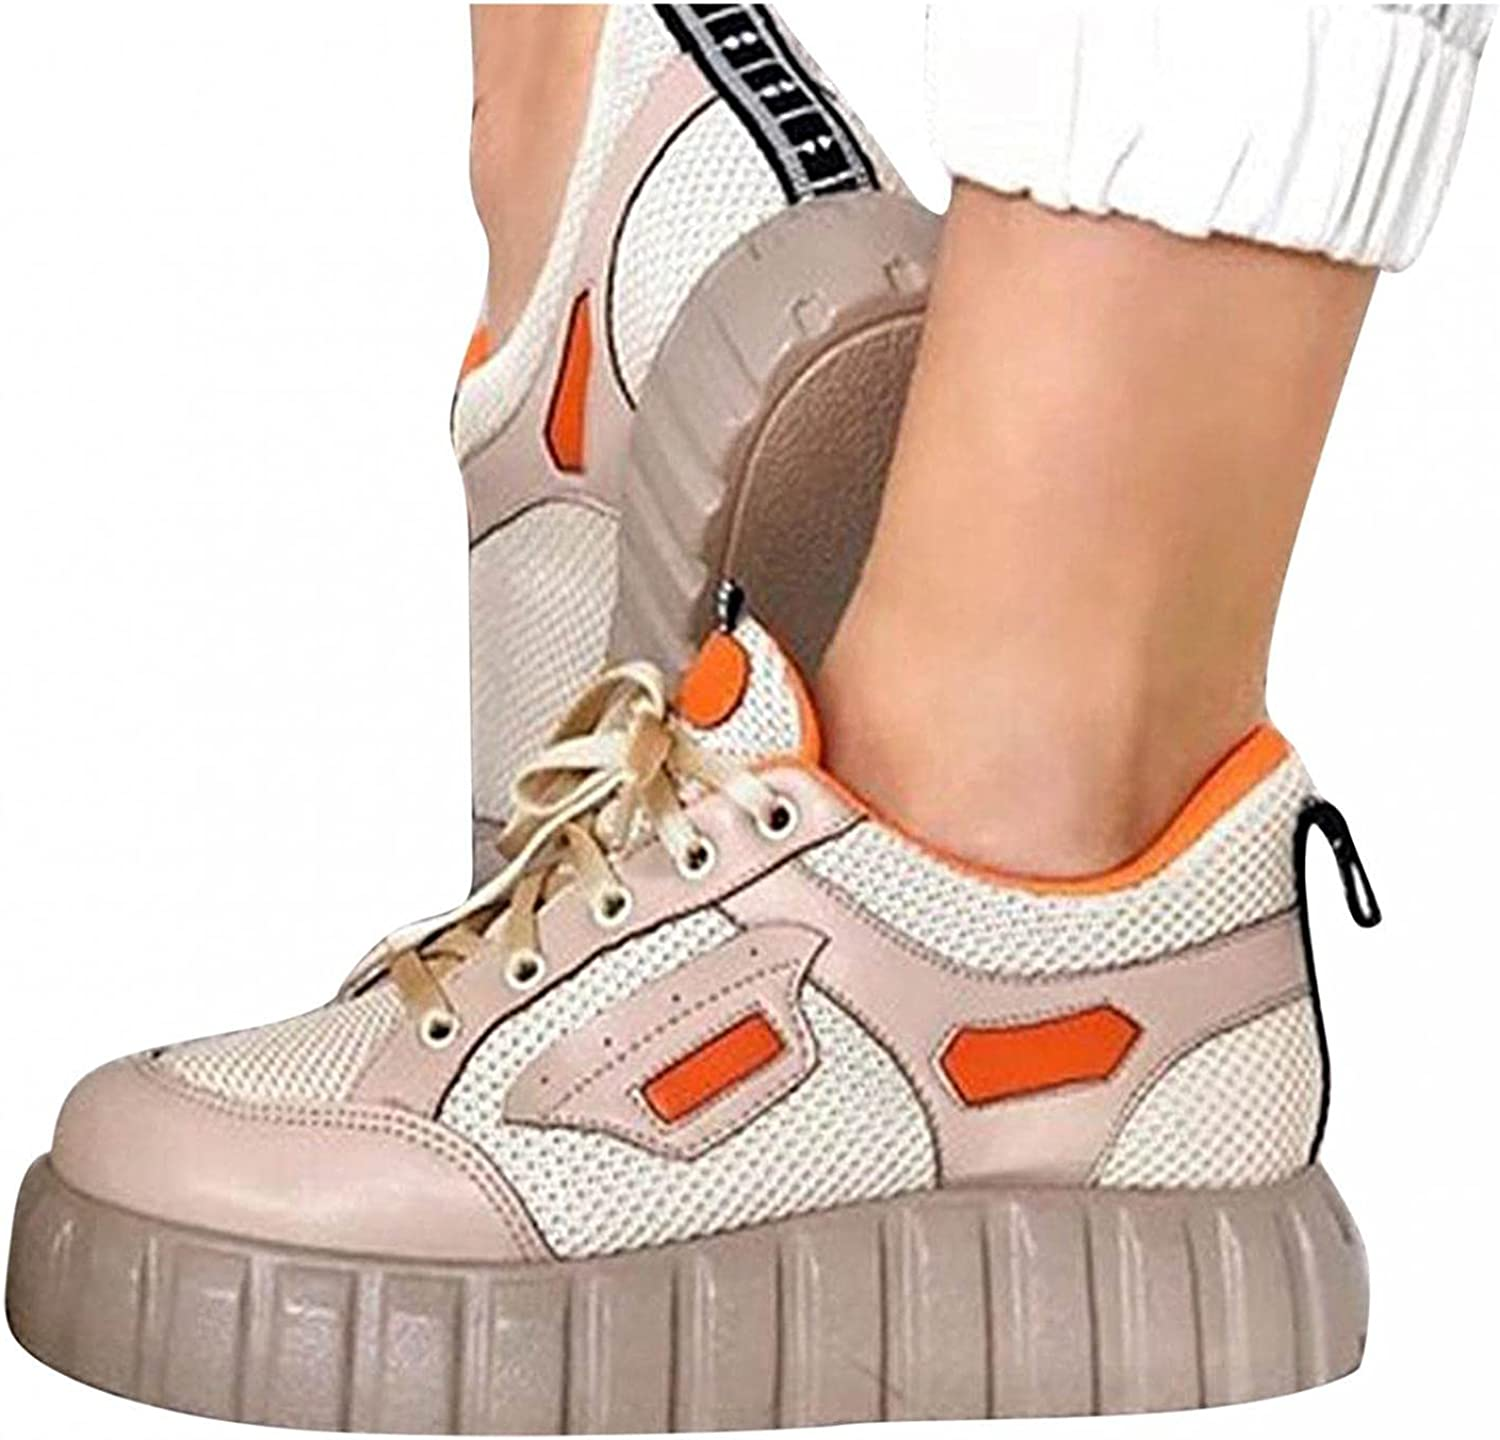 Hbeylia Platform Walking Shoes Fashion Sneakers For Women Girls Breathable Mesh Leather Lace Up Chunky Bottom Heels Low Top Canvas Shoes Running Tennis Hiking Slip On Flats Play Sneakers